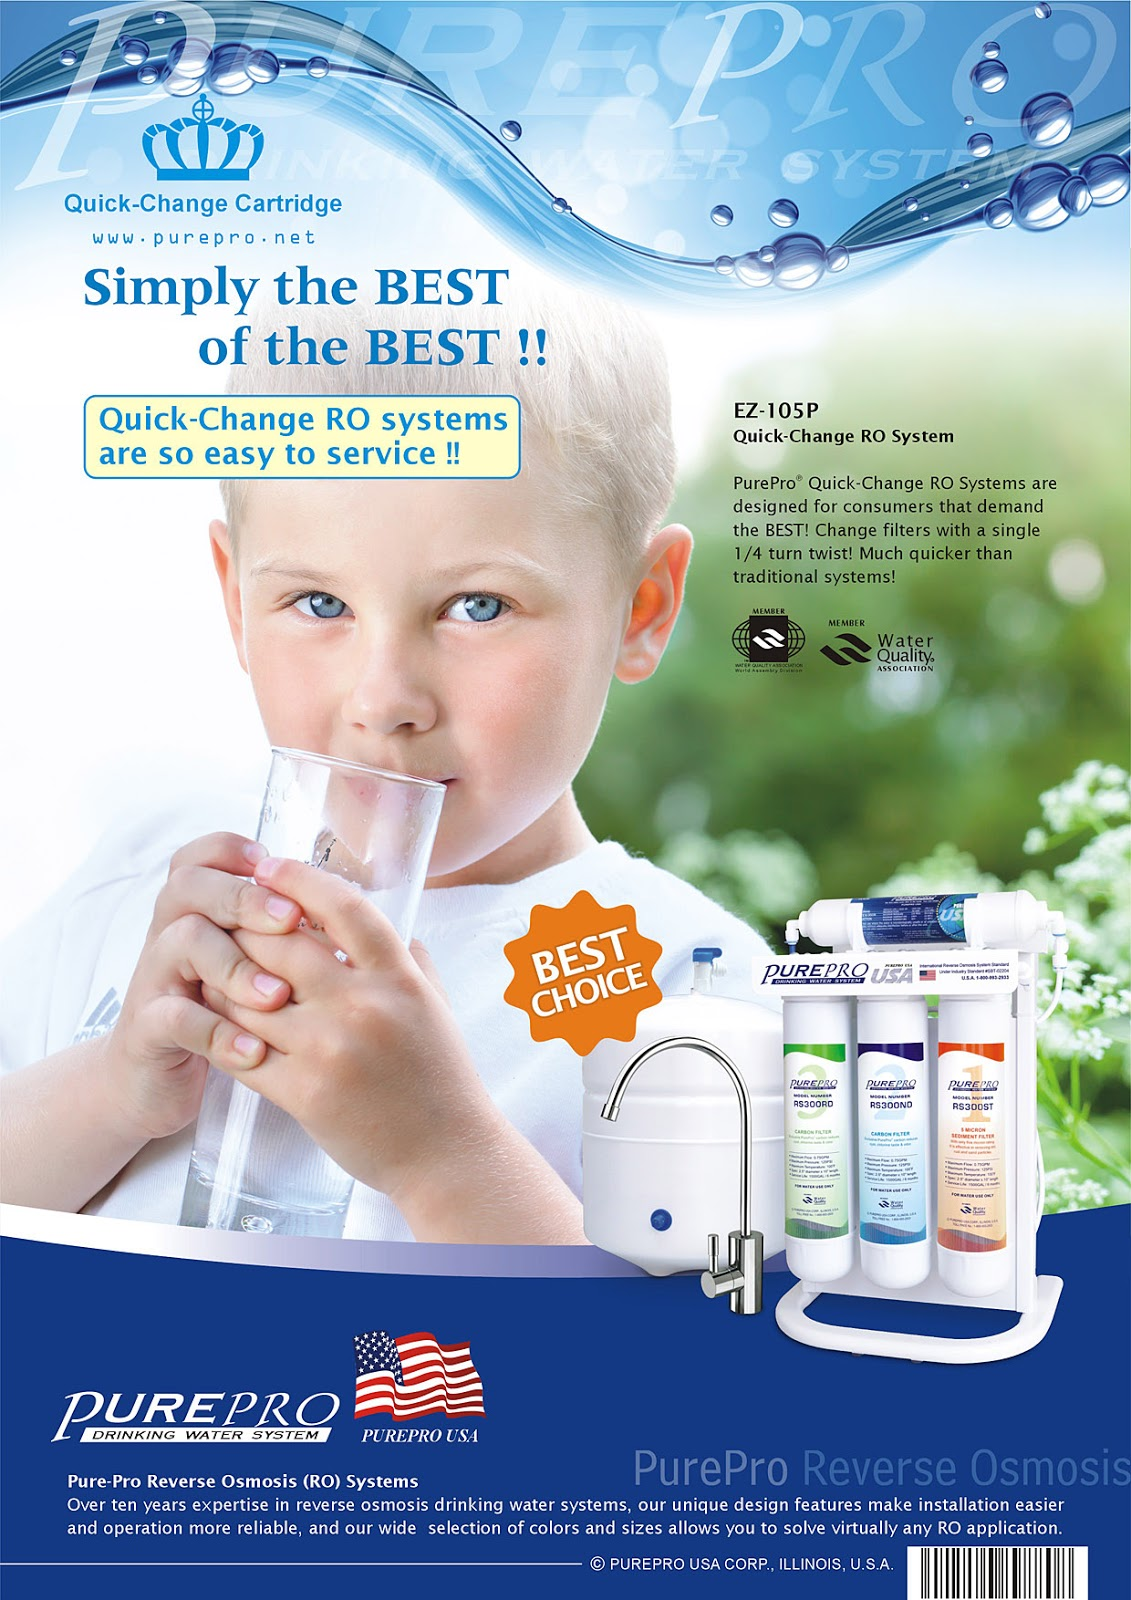 10 Best Reverse Osmosis Filter Systems – (Reviews & Guide 2020)